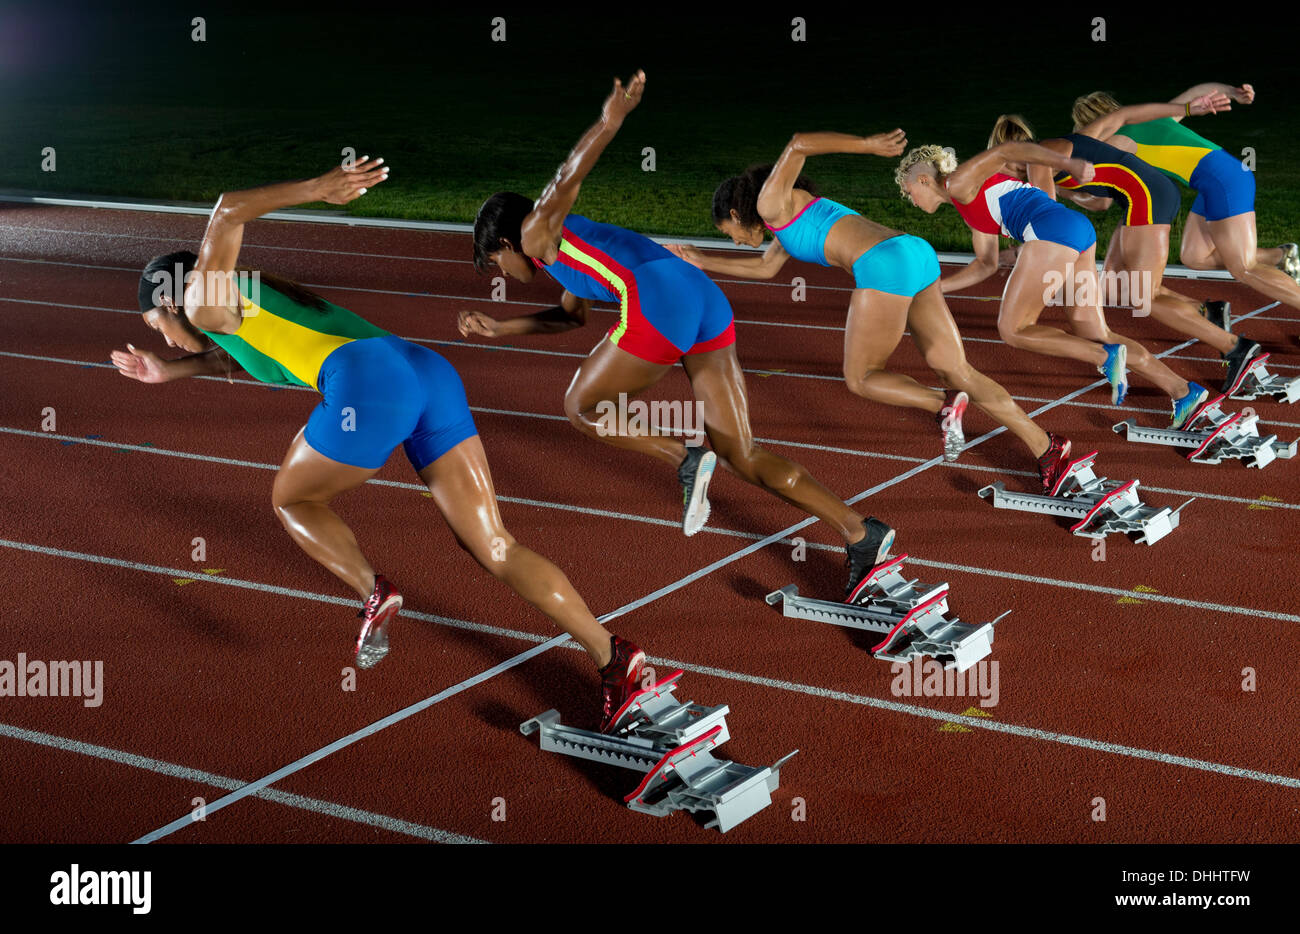 Runners starting race - Stock Image